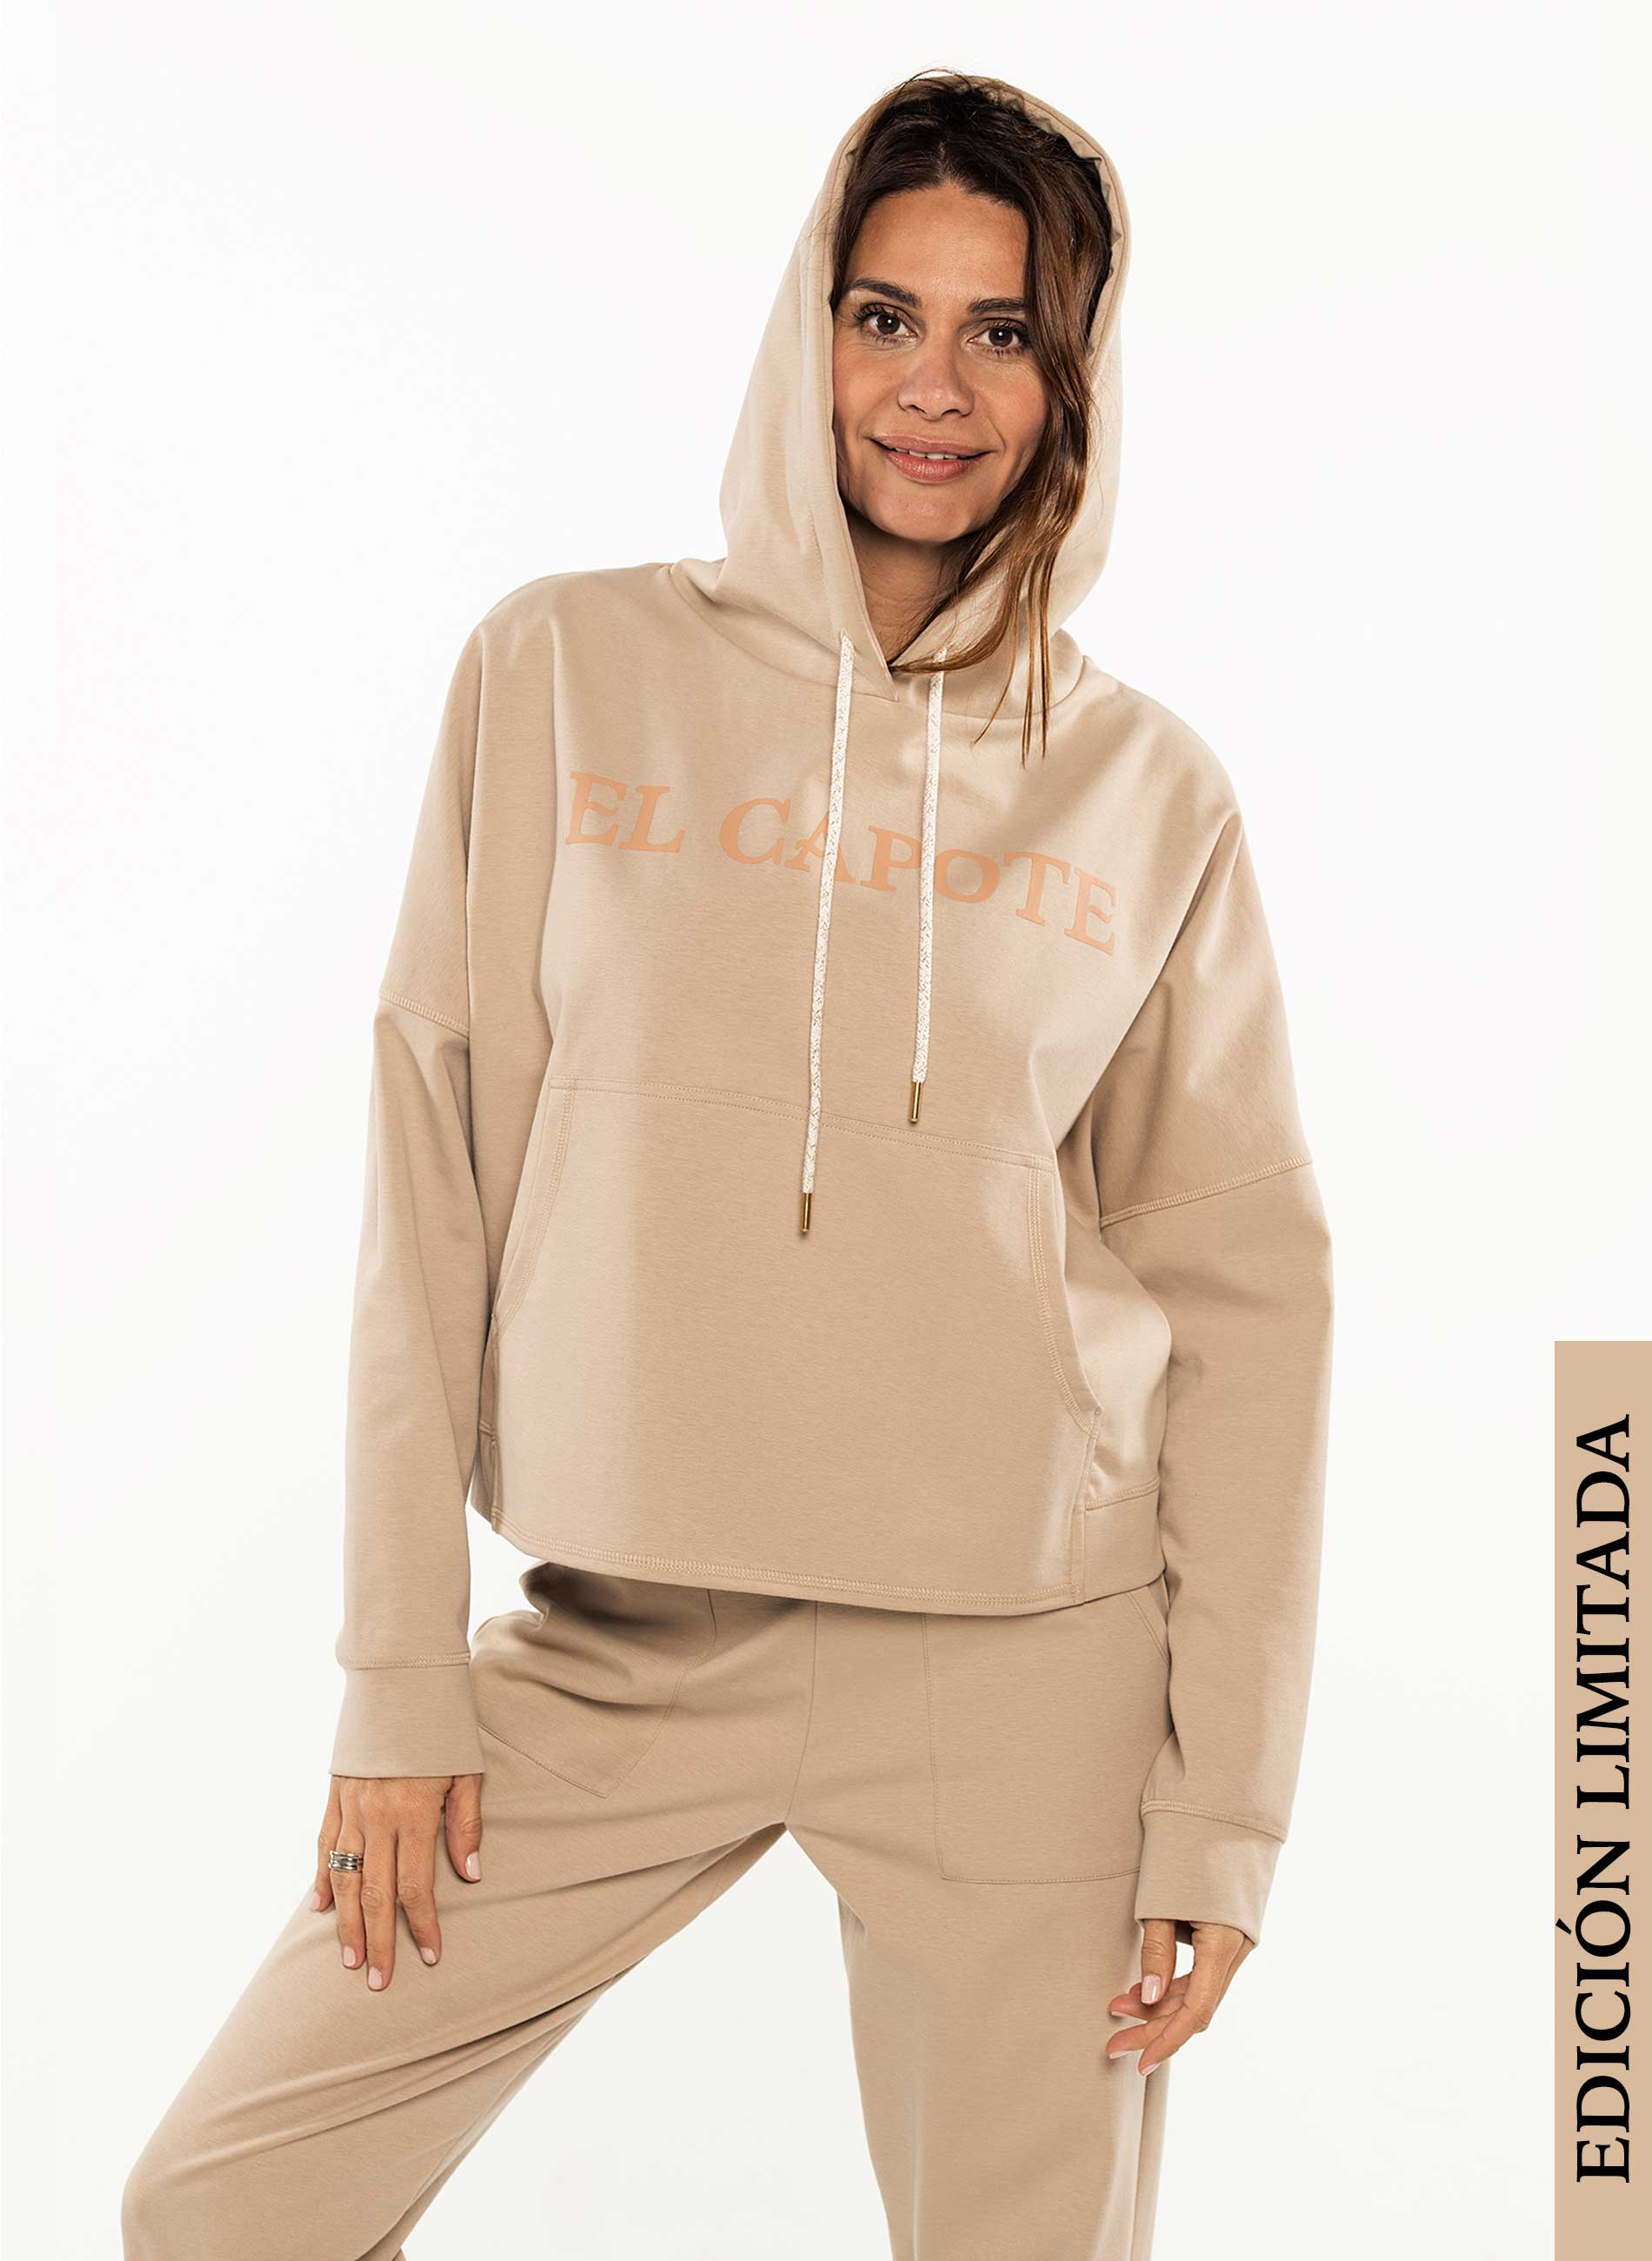 Tracksuit Woman Beige Limited Edition